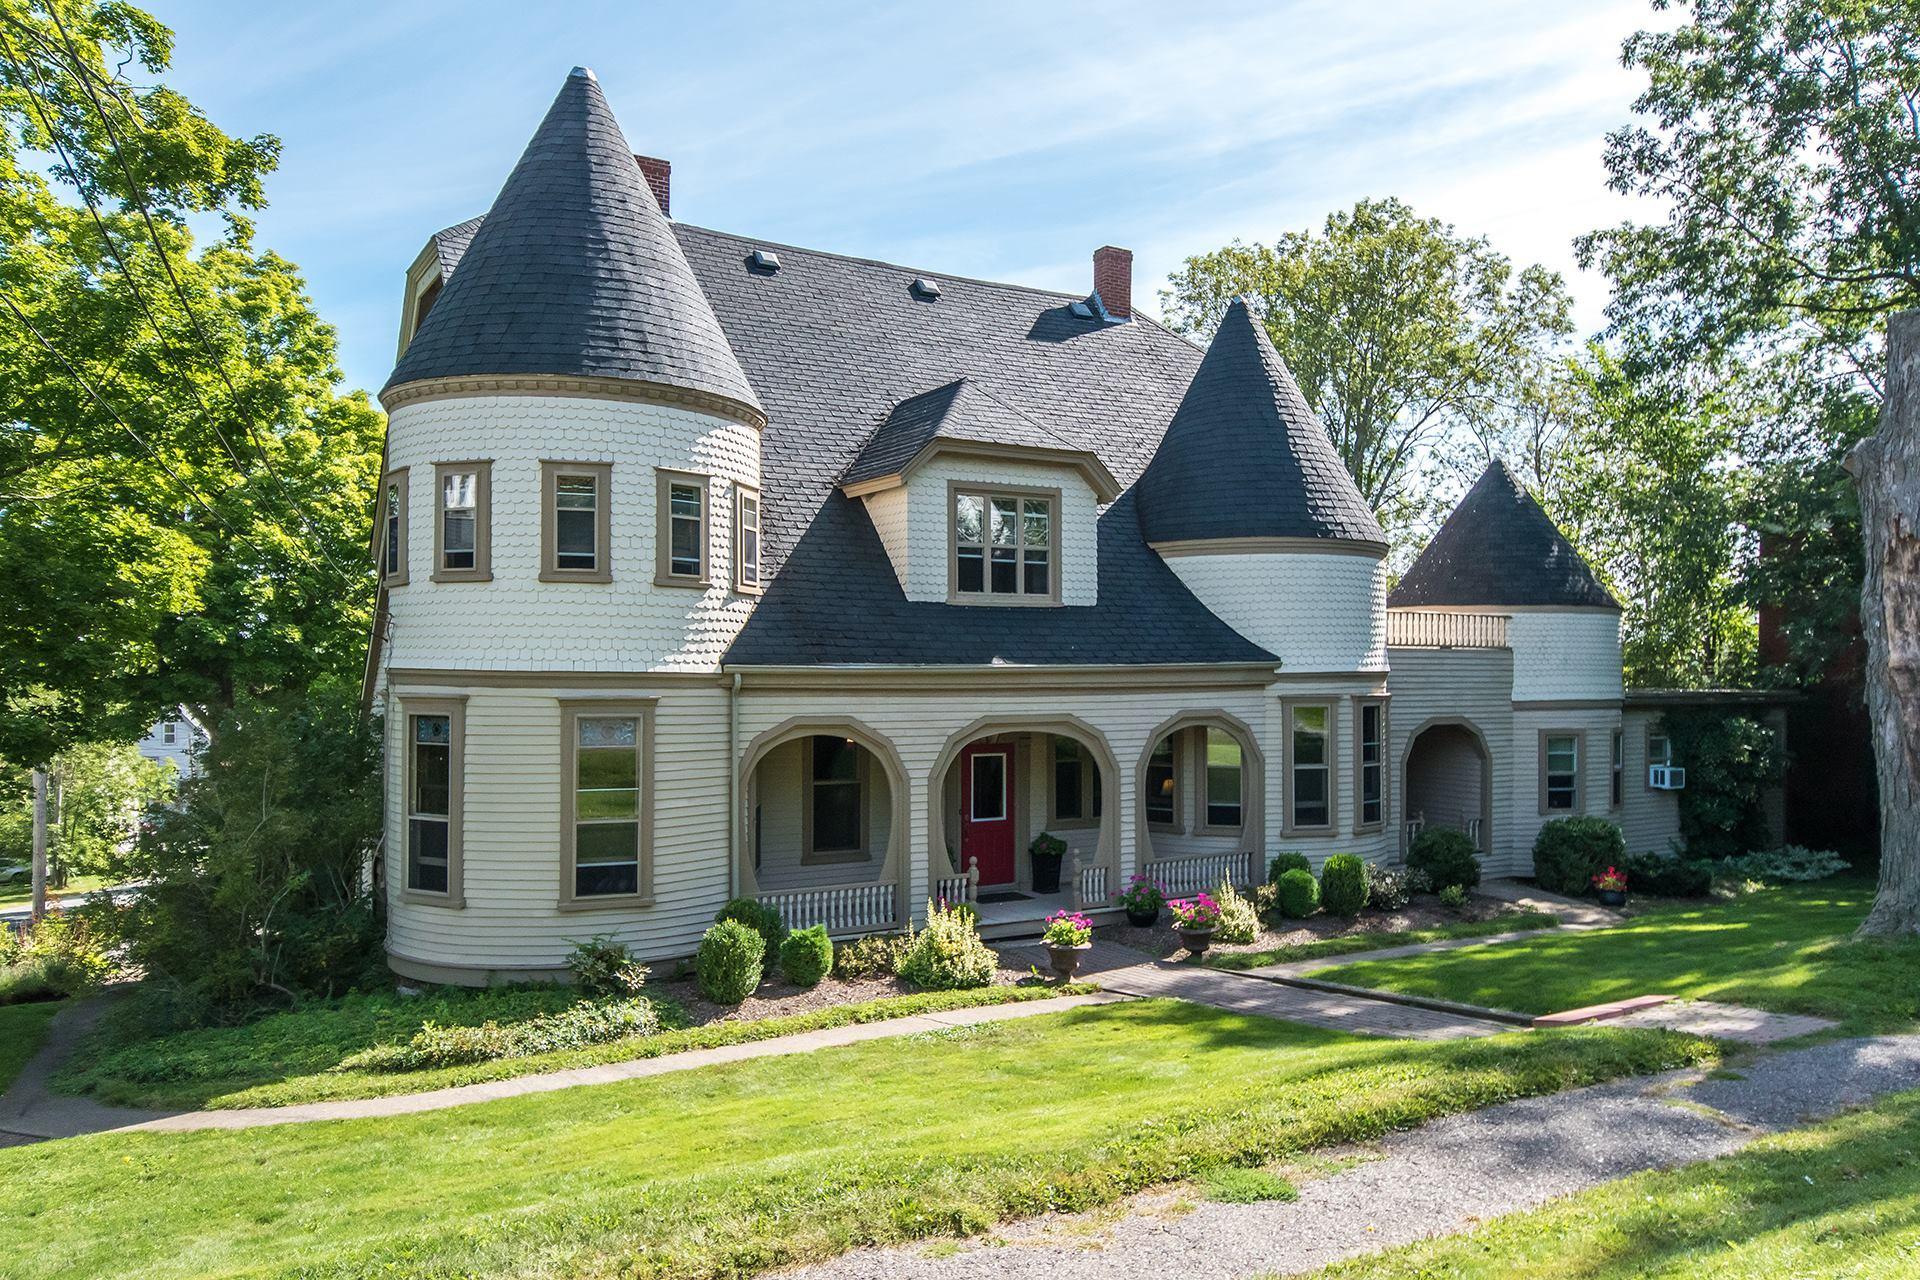 Windsor, N S  Mansion Is Selling For Less Than Some Big-City